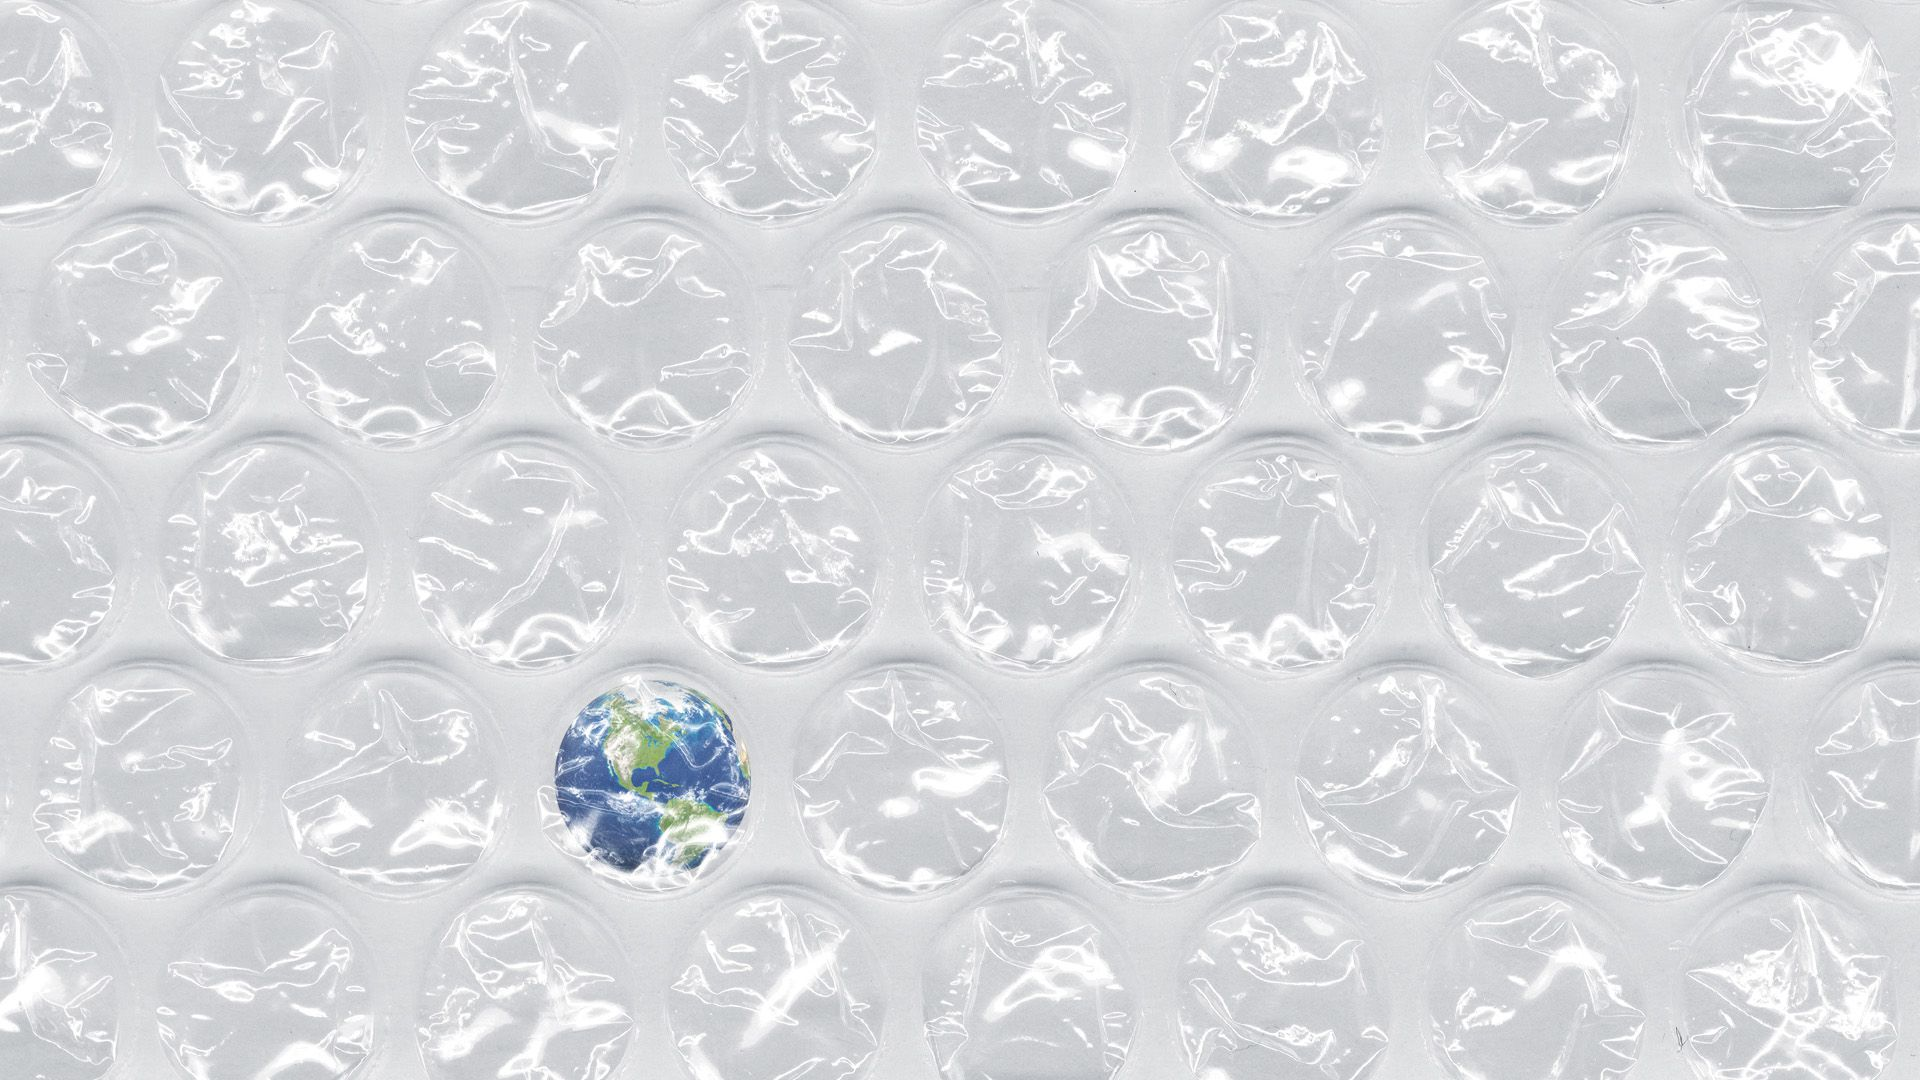 Illustration of bubble wrap with one bubble filled with the Earth